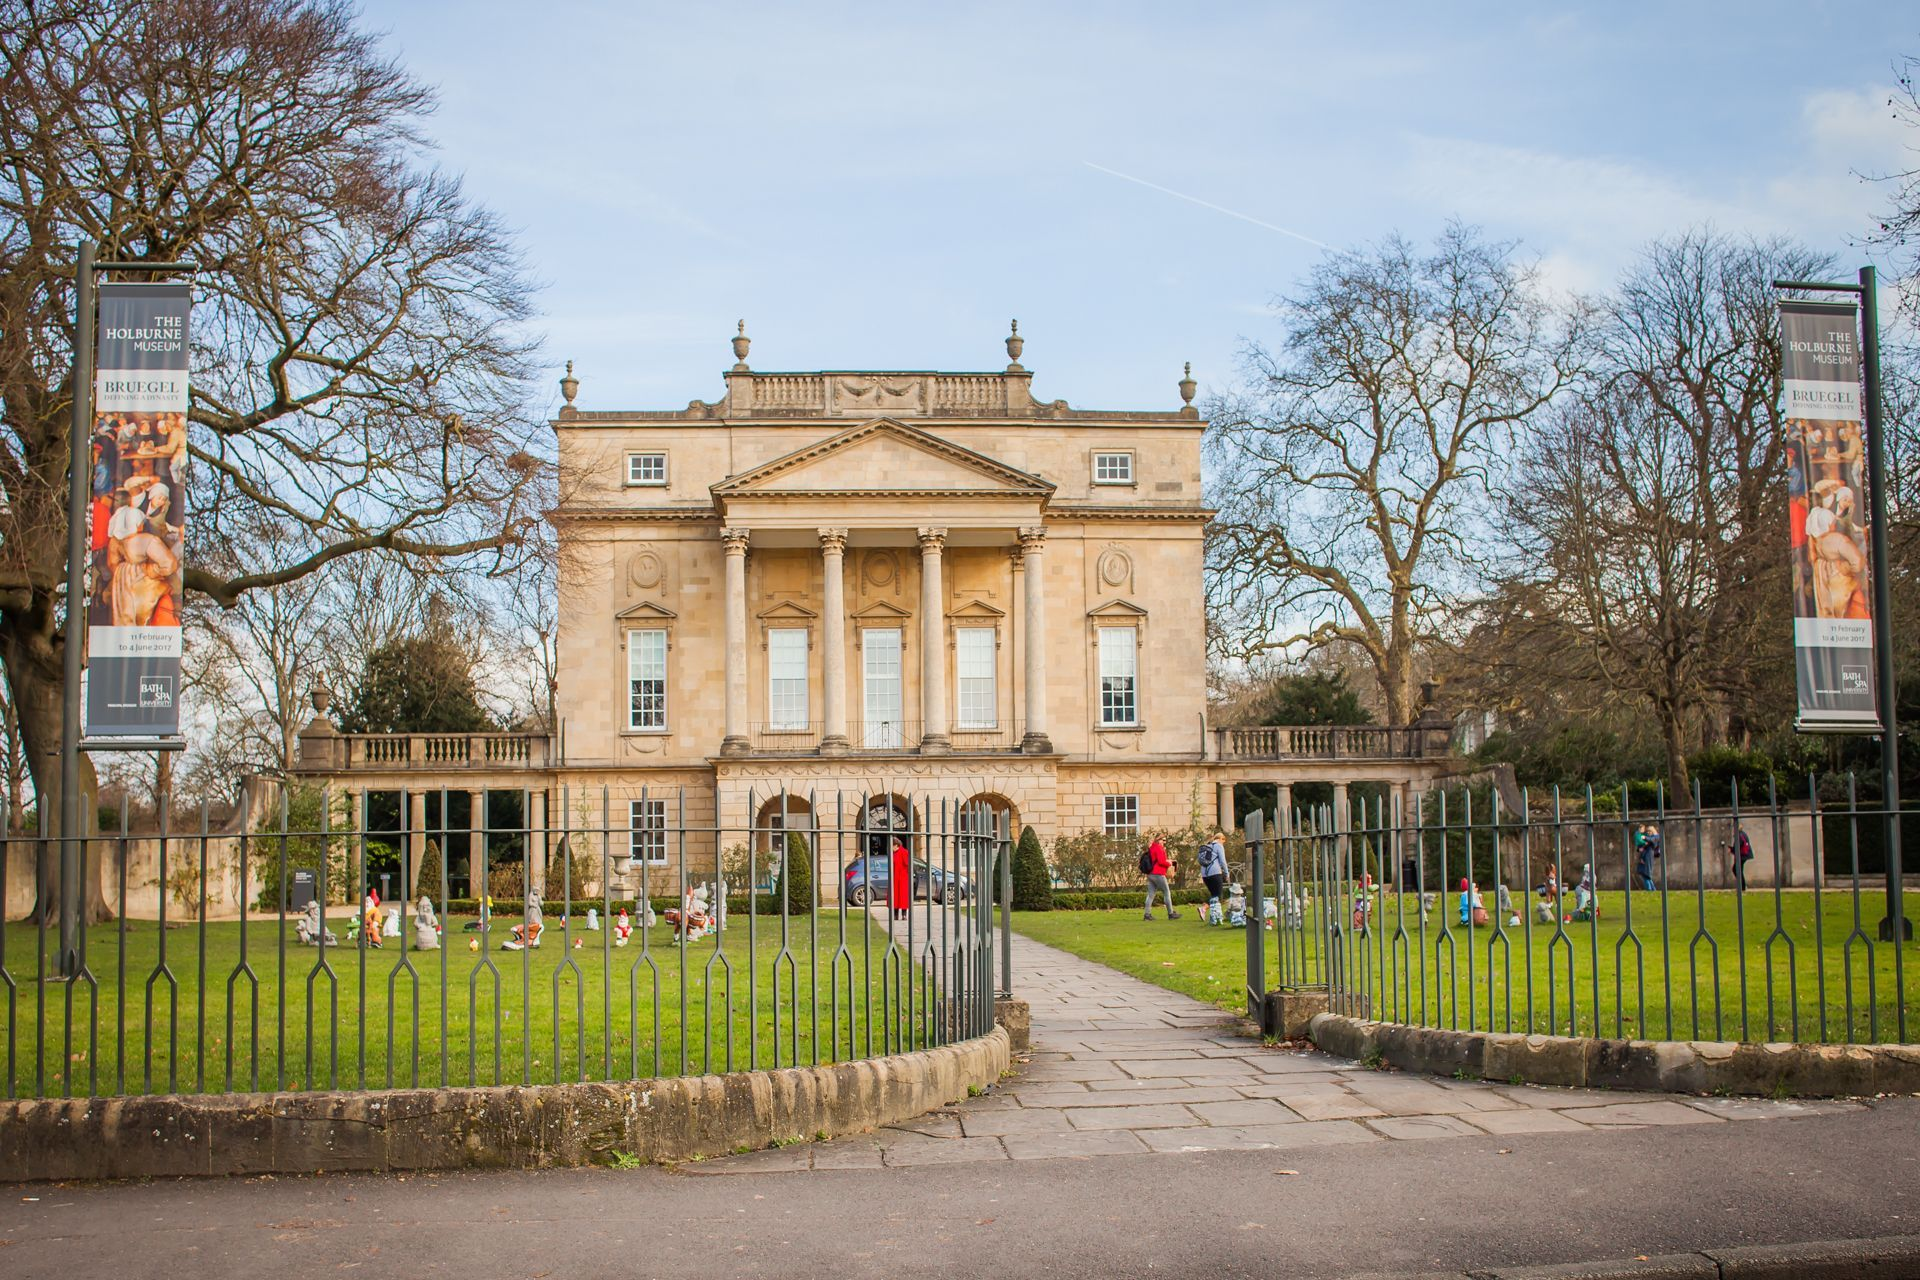 Bath city break: The Holburne Museum in Bath